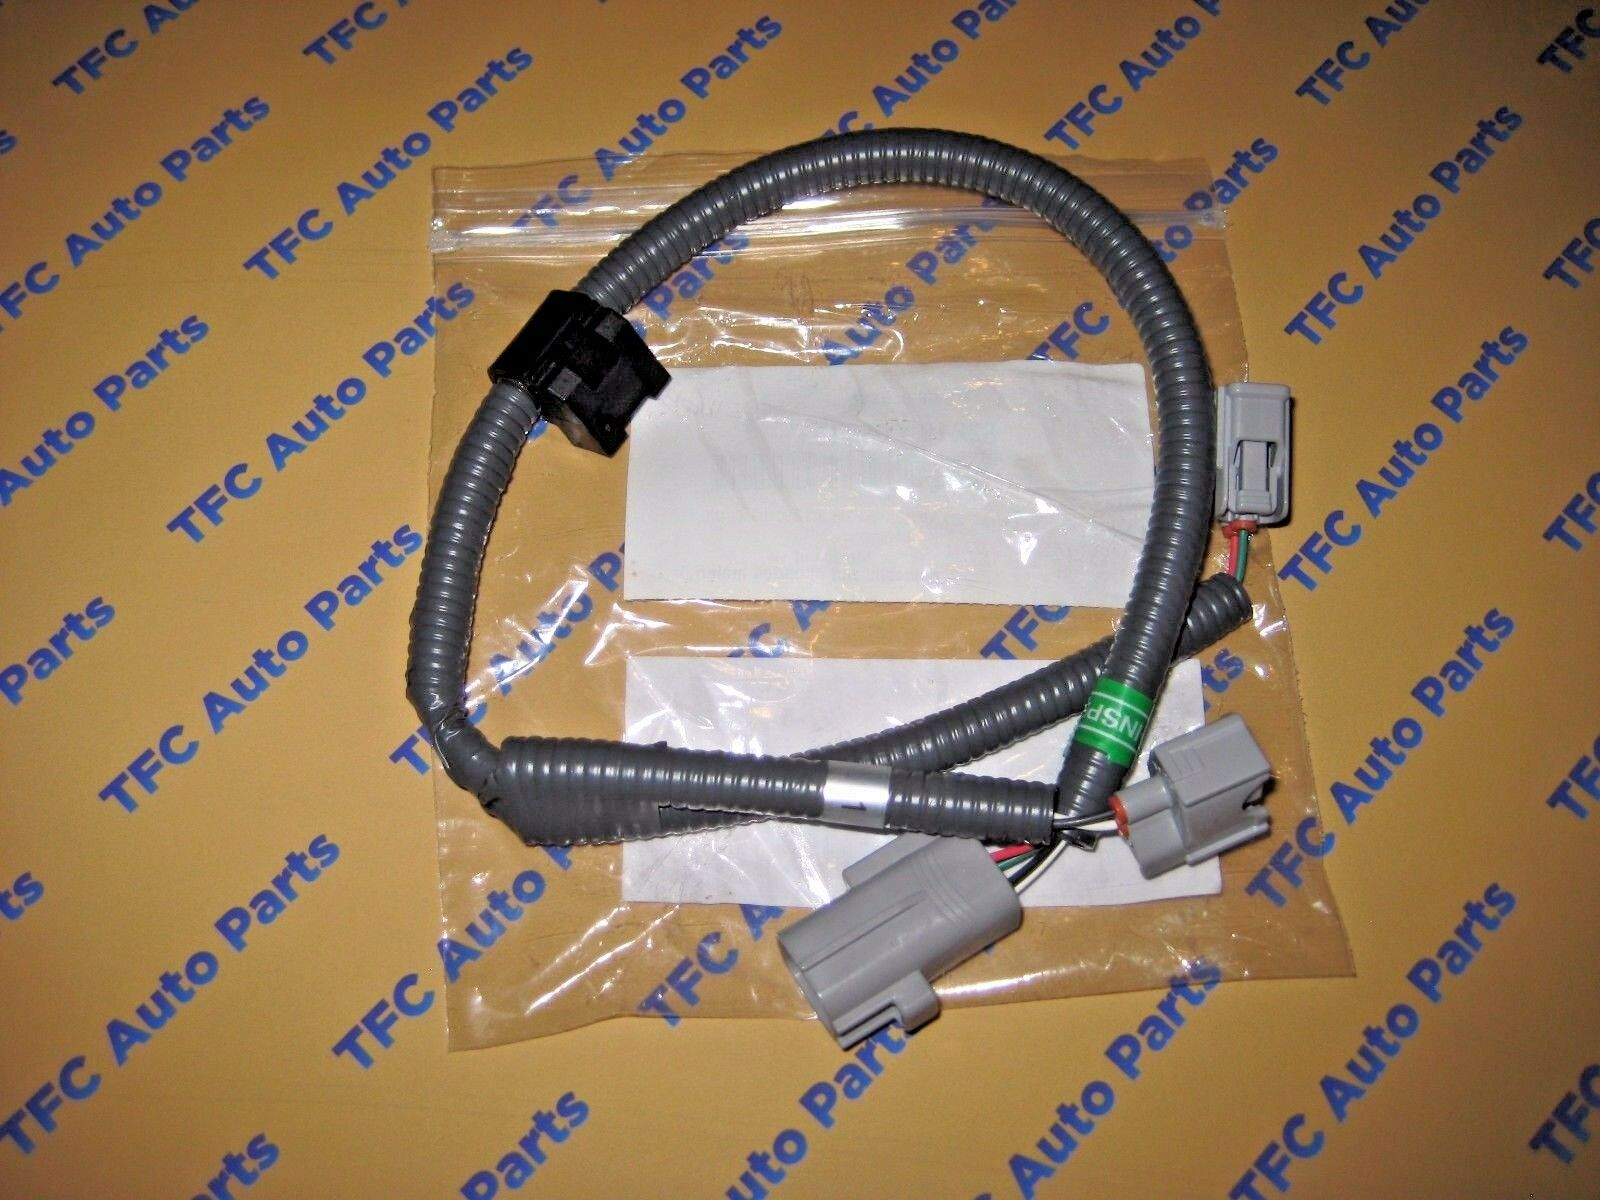 Toyota Camry Highlander Sienna Es300 Rx Knock Sensor Wire Harness Picture 1 Of 7